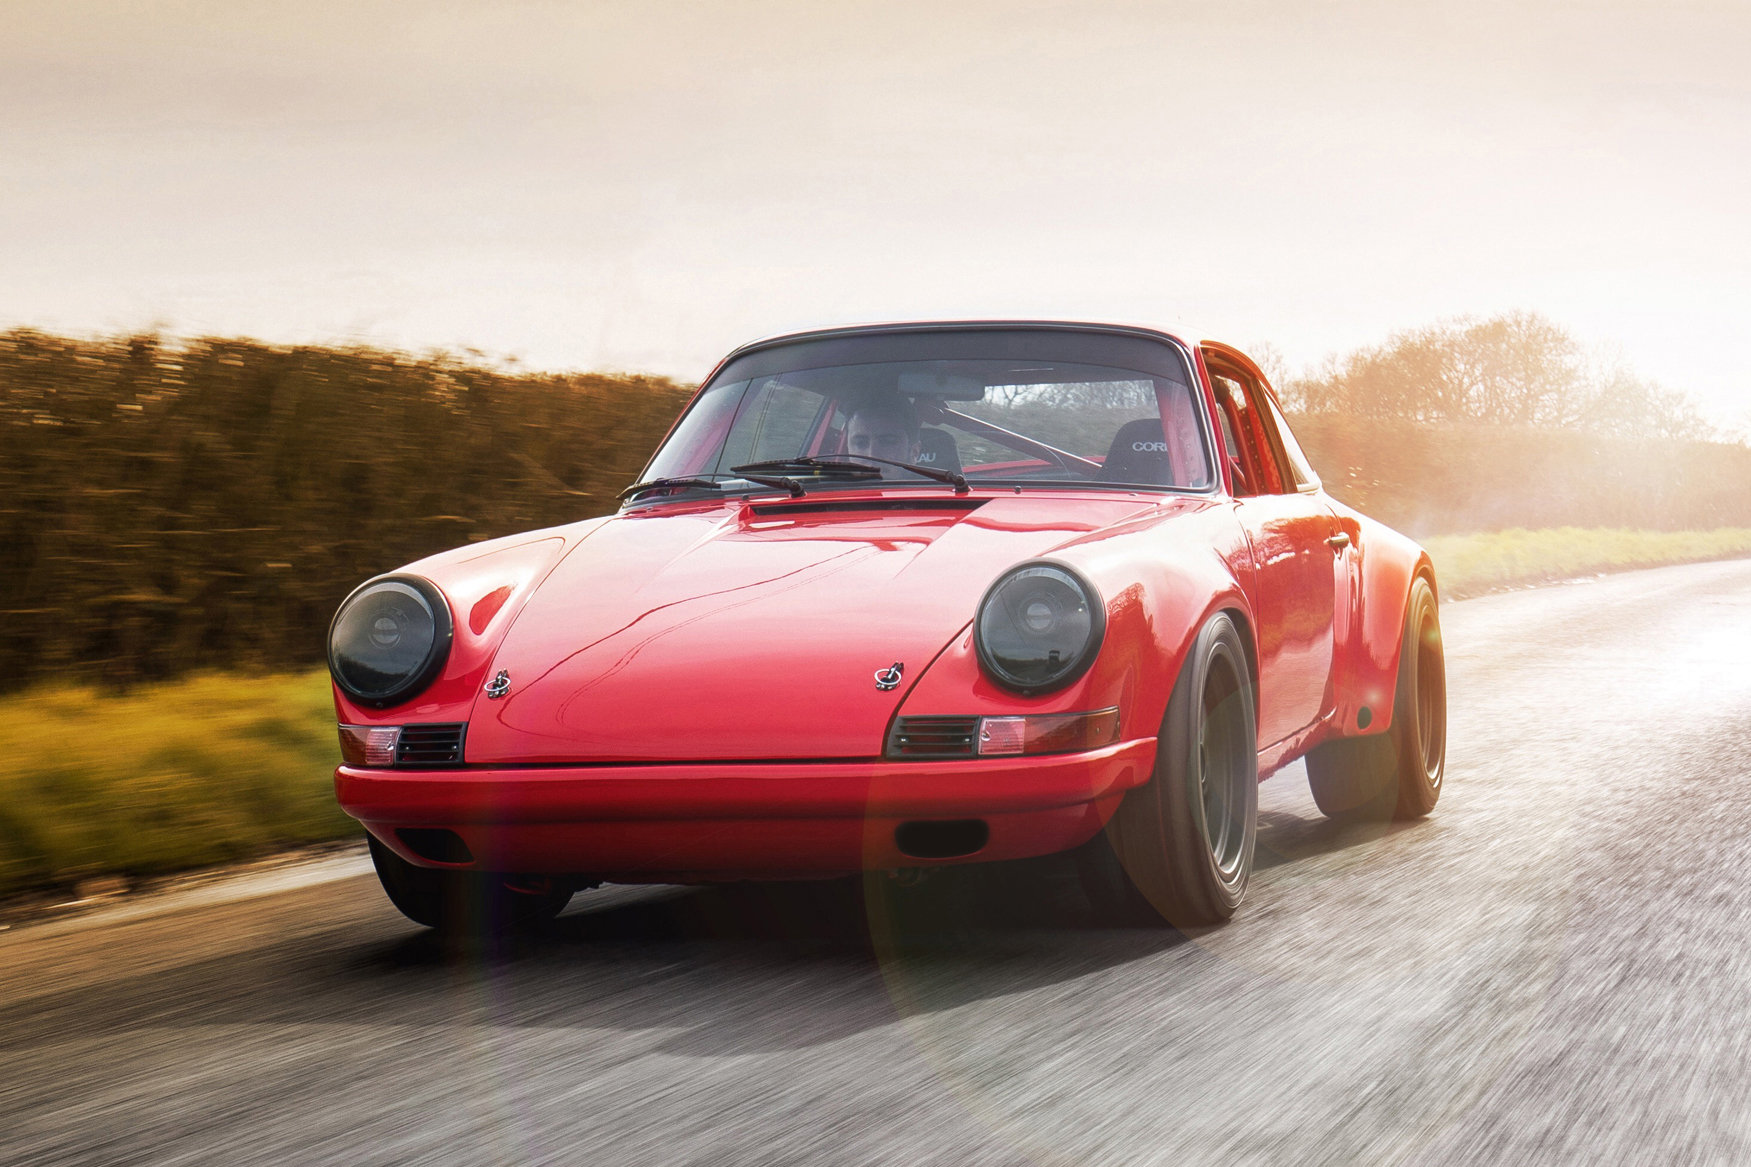 1975 Porsche 911 Outlaw RHD (road / track car) For Sale (picture 2 of 6)